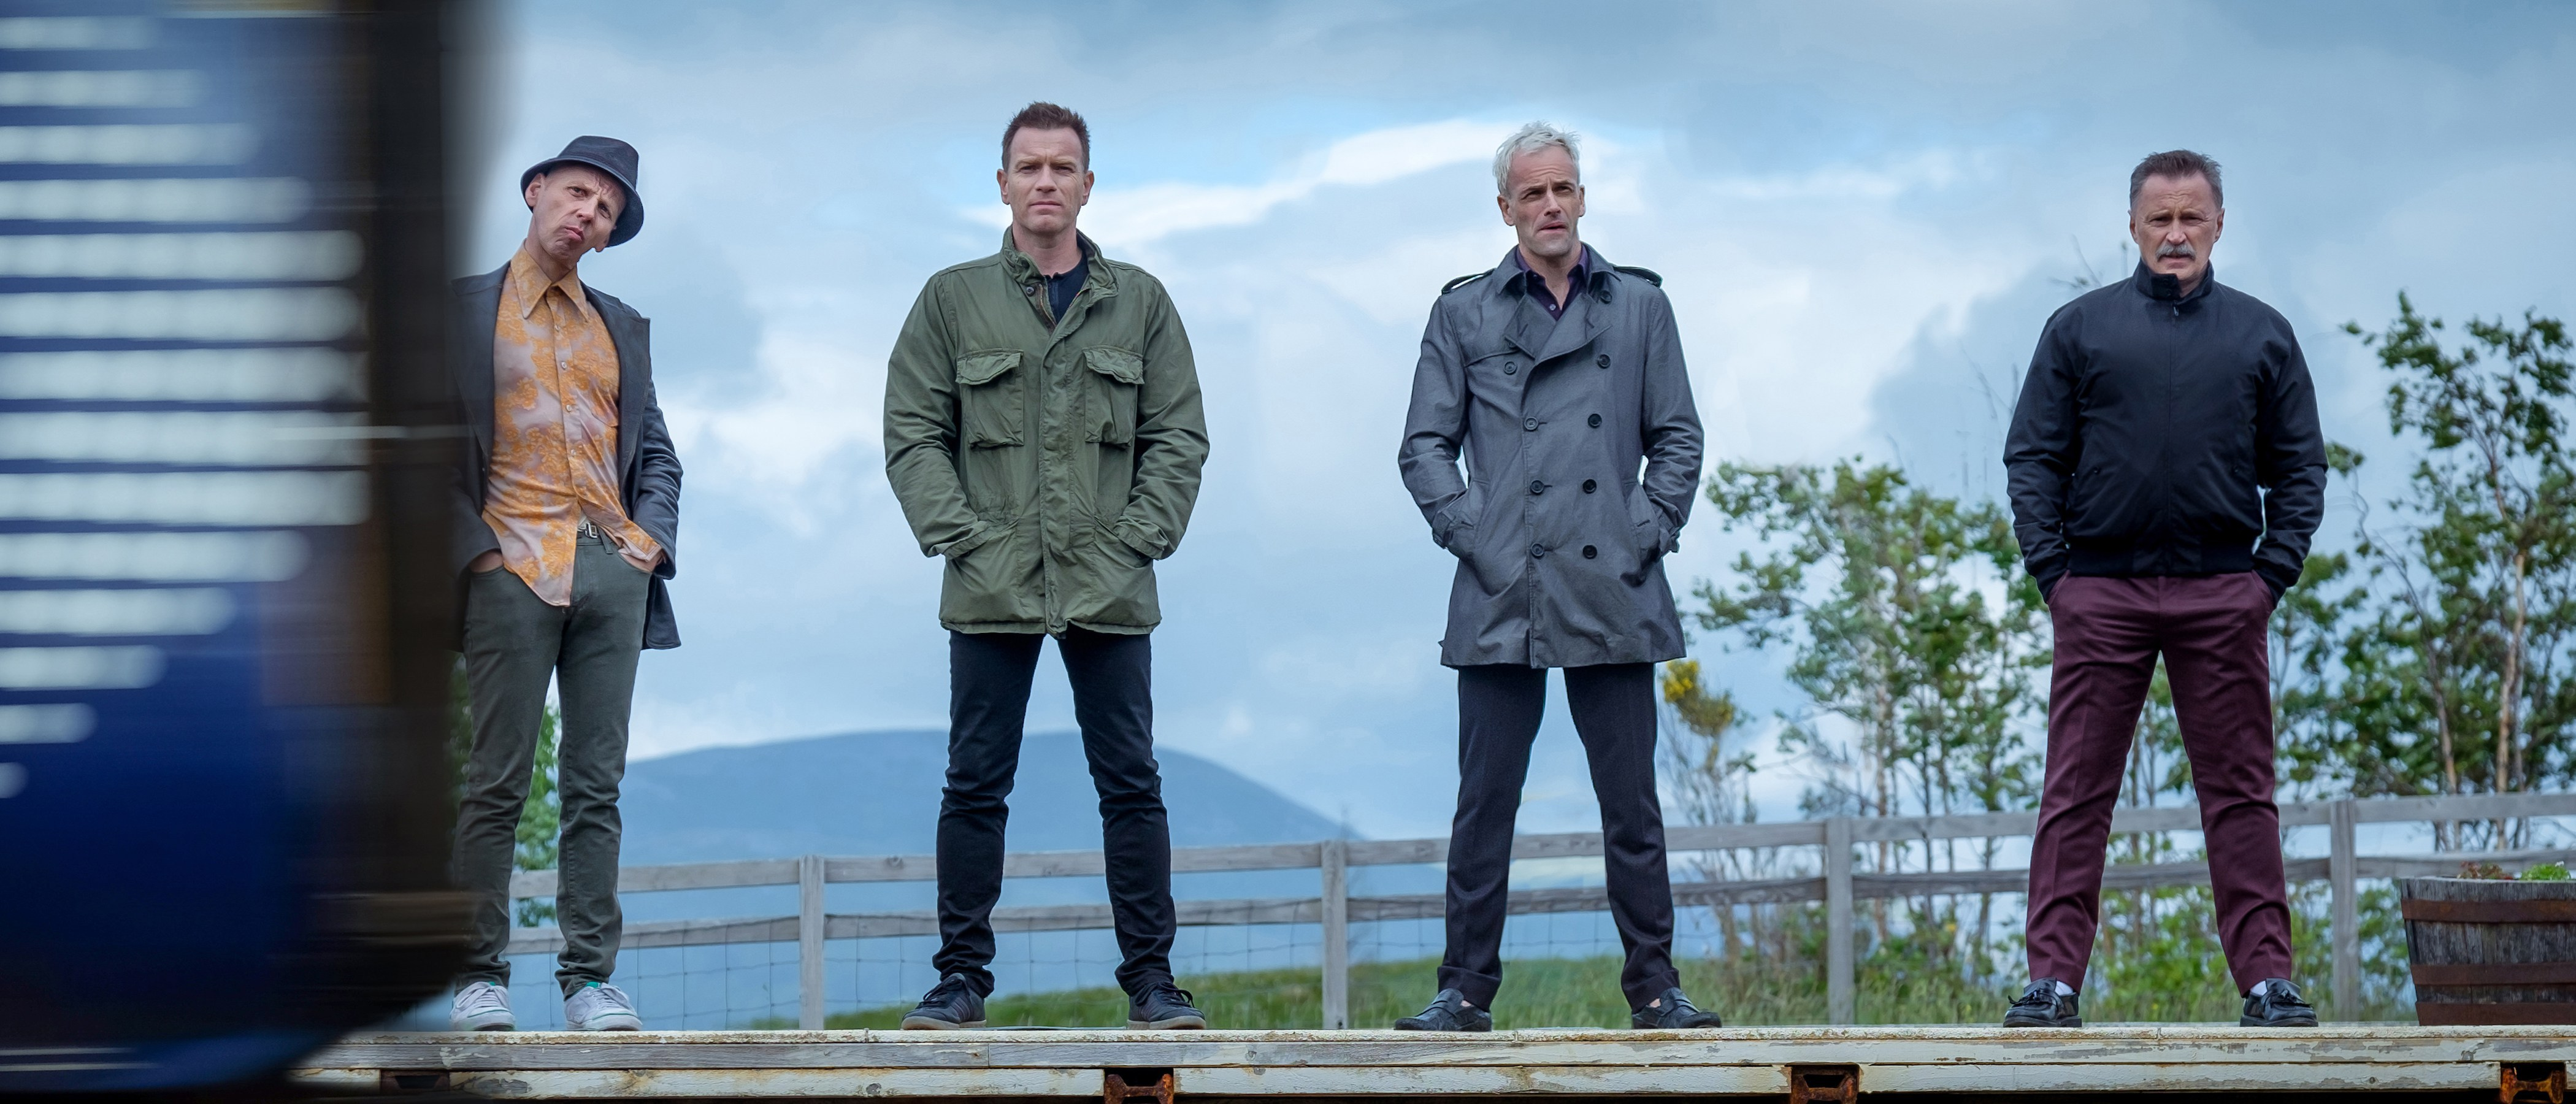 T2: Trainspotting Top 12 Hollywood Movies to Look Forward to in 2017